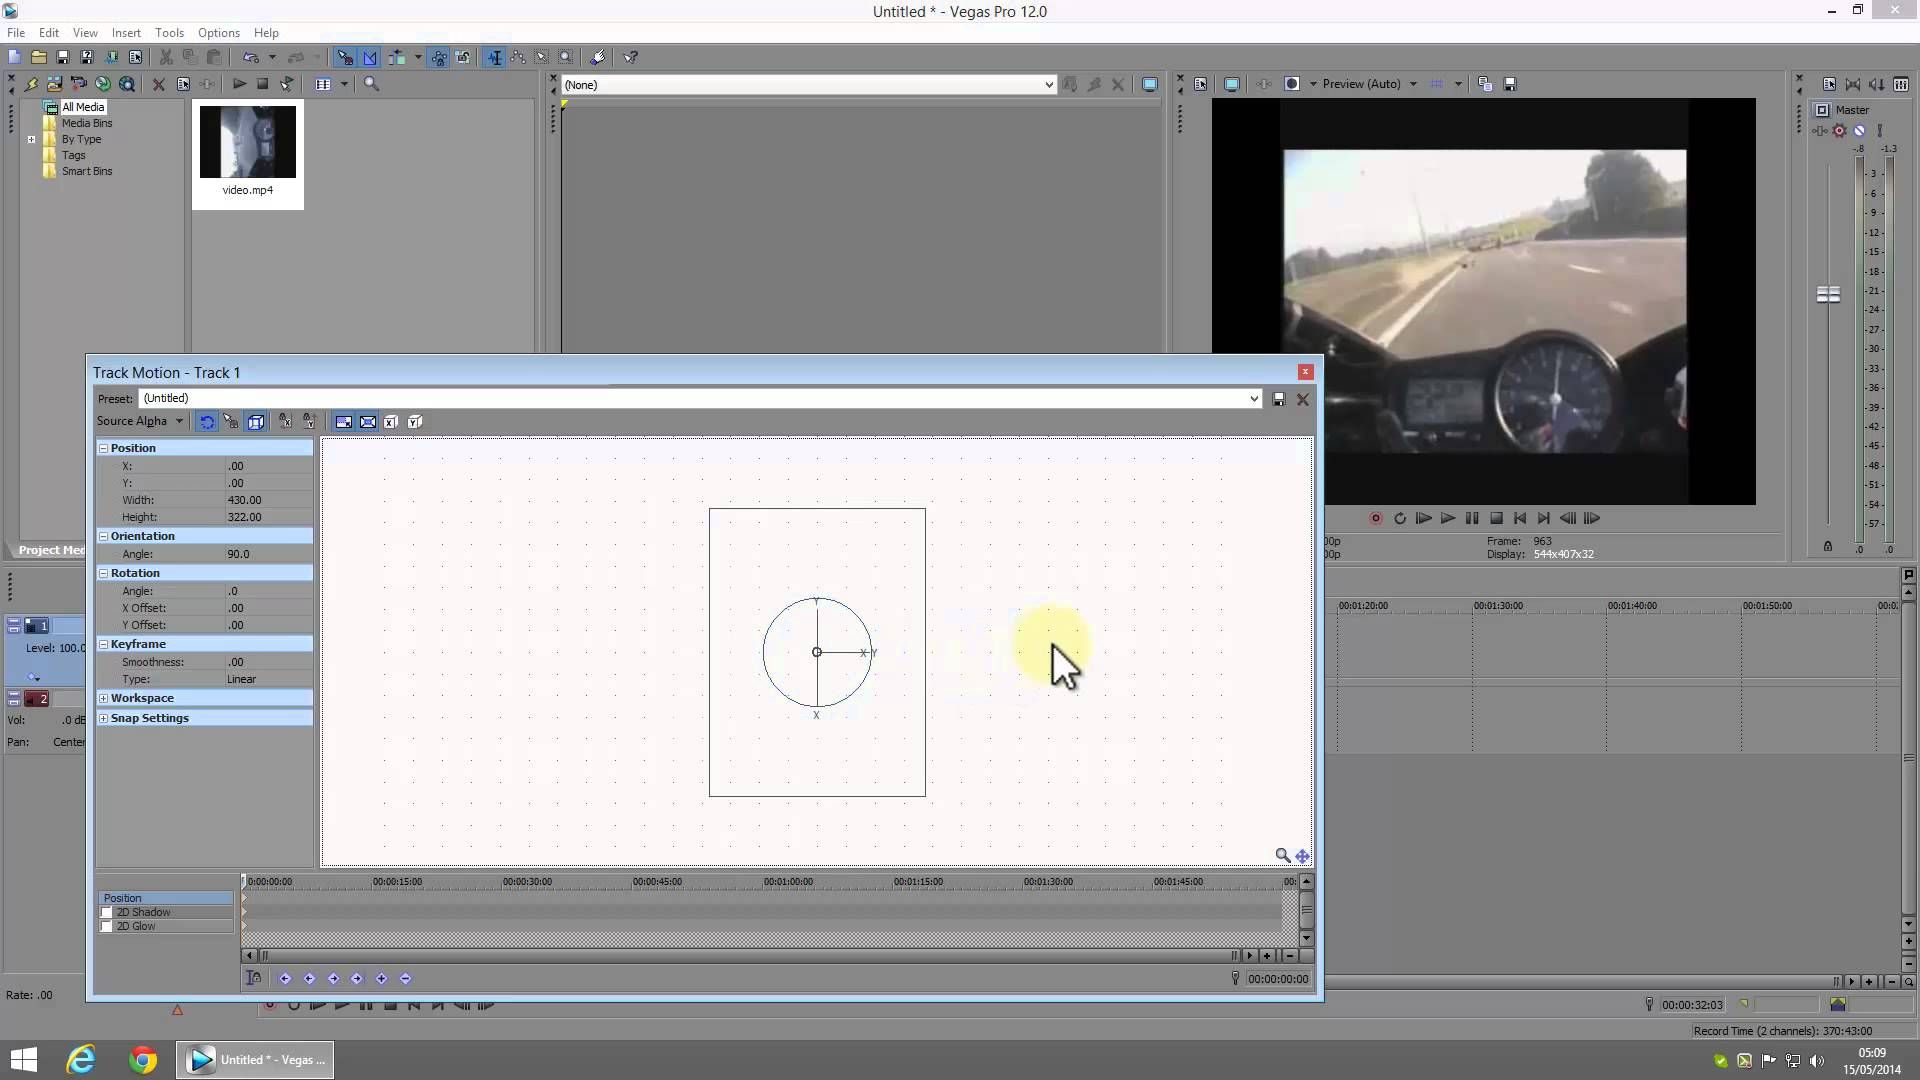 How to rotate a video or image in sony vegas pro tutoria here how to rotate a video or image in sony vegas pro tutorial 1080p ccuart Image collections